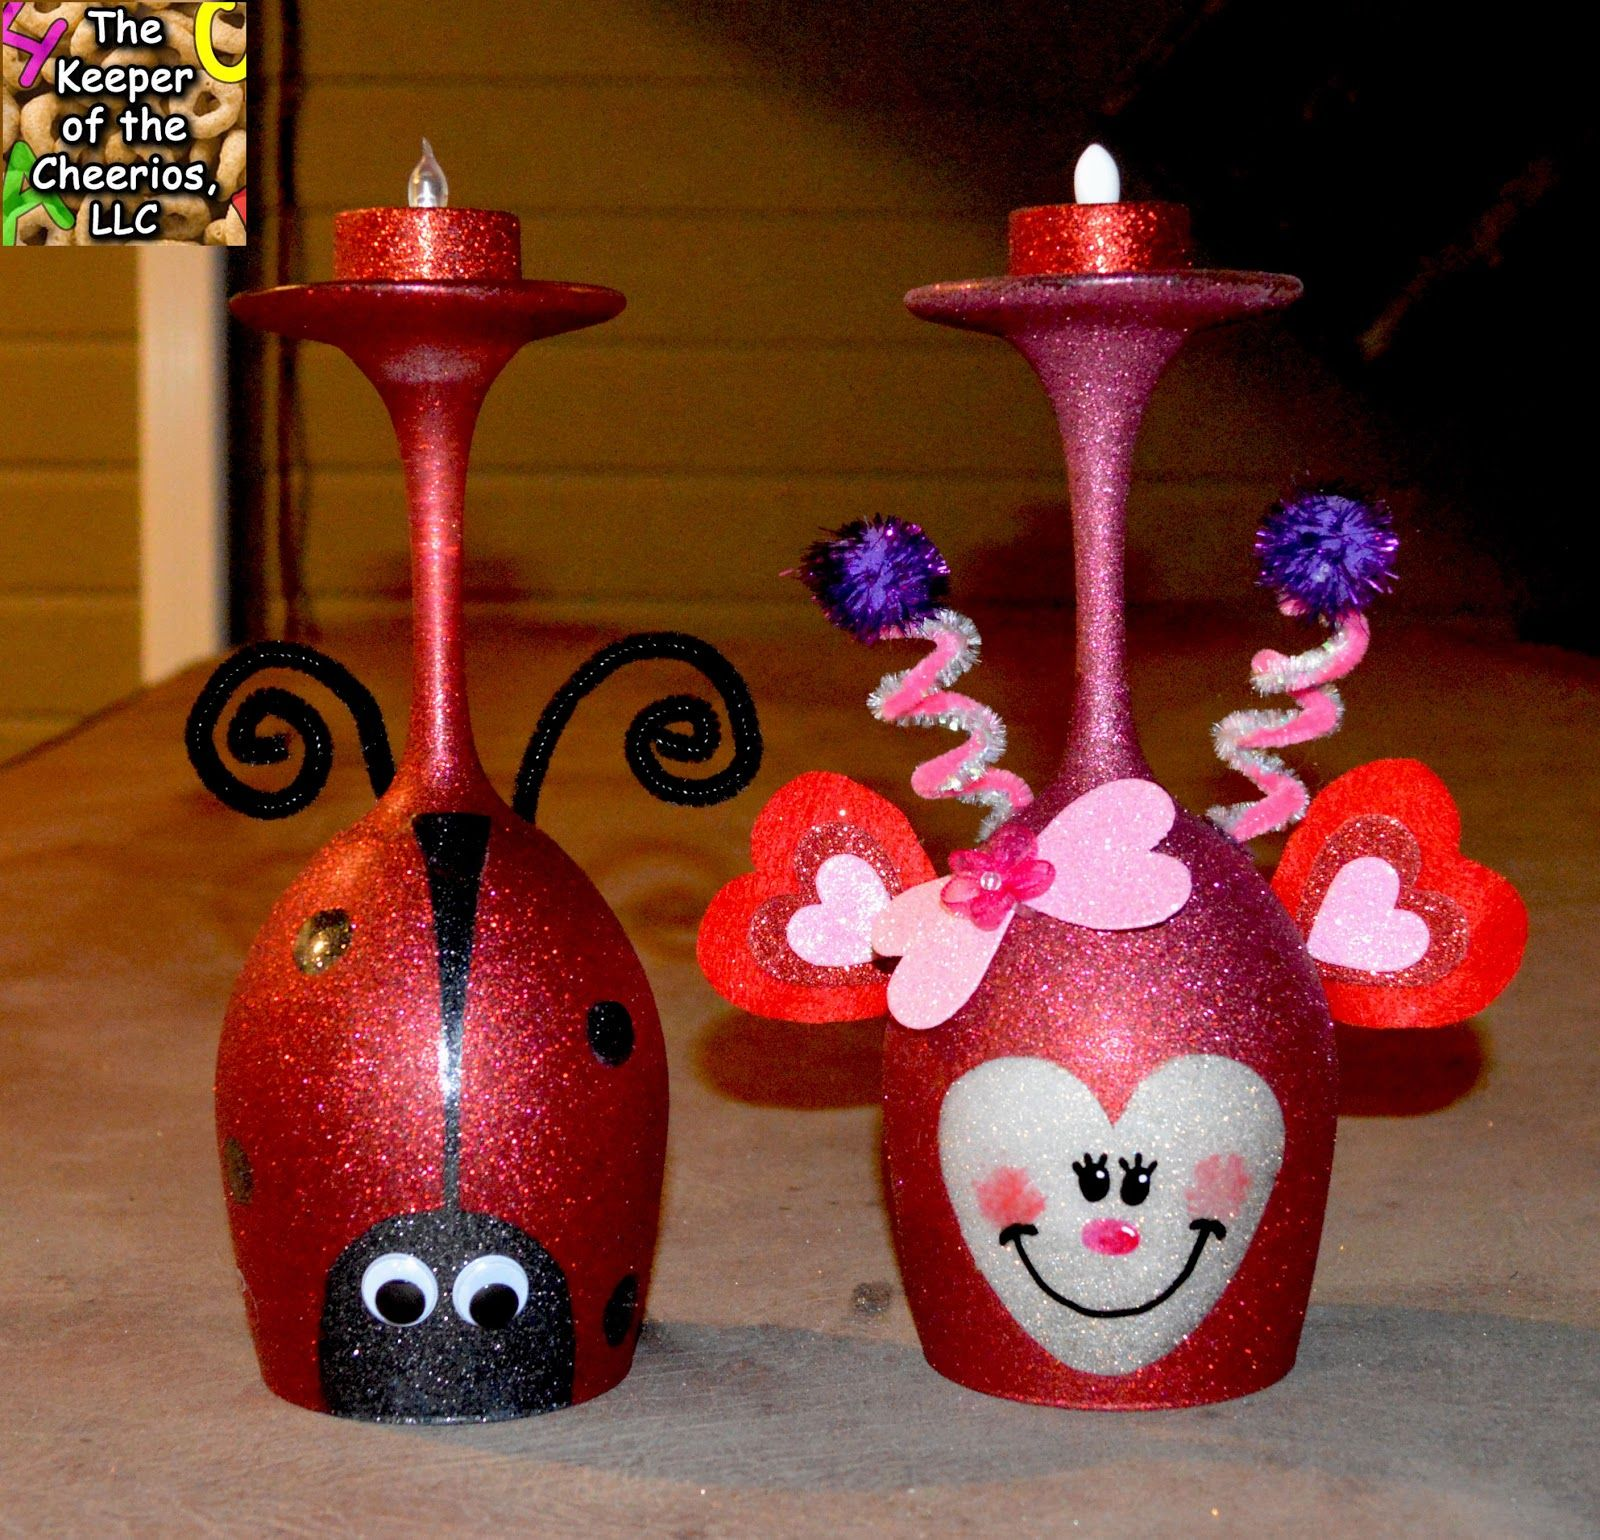 The Keeper Of The Cheerios LOVE BUG AND LADY BUG WINE GLASS - Cool diy spring candles and candleholders